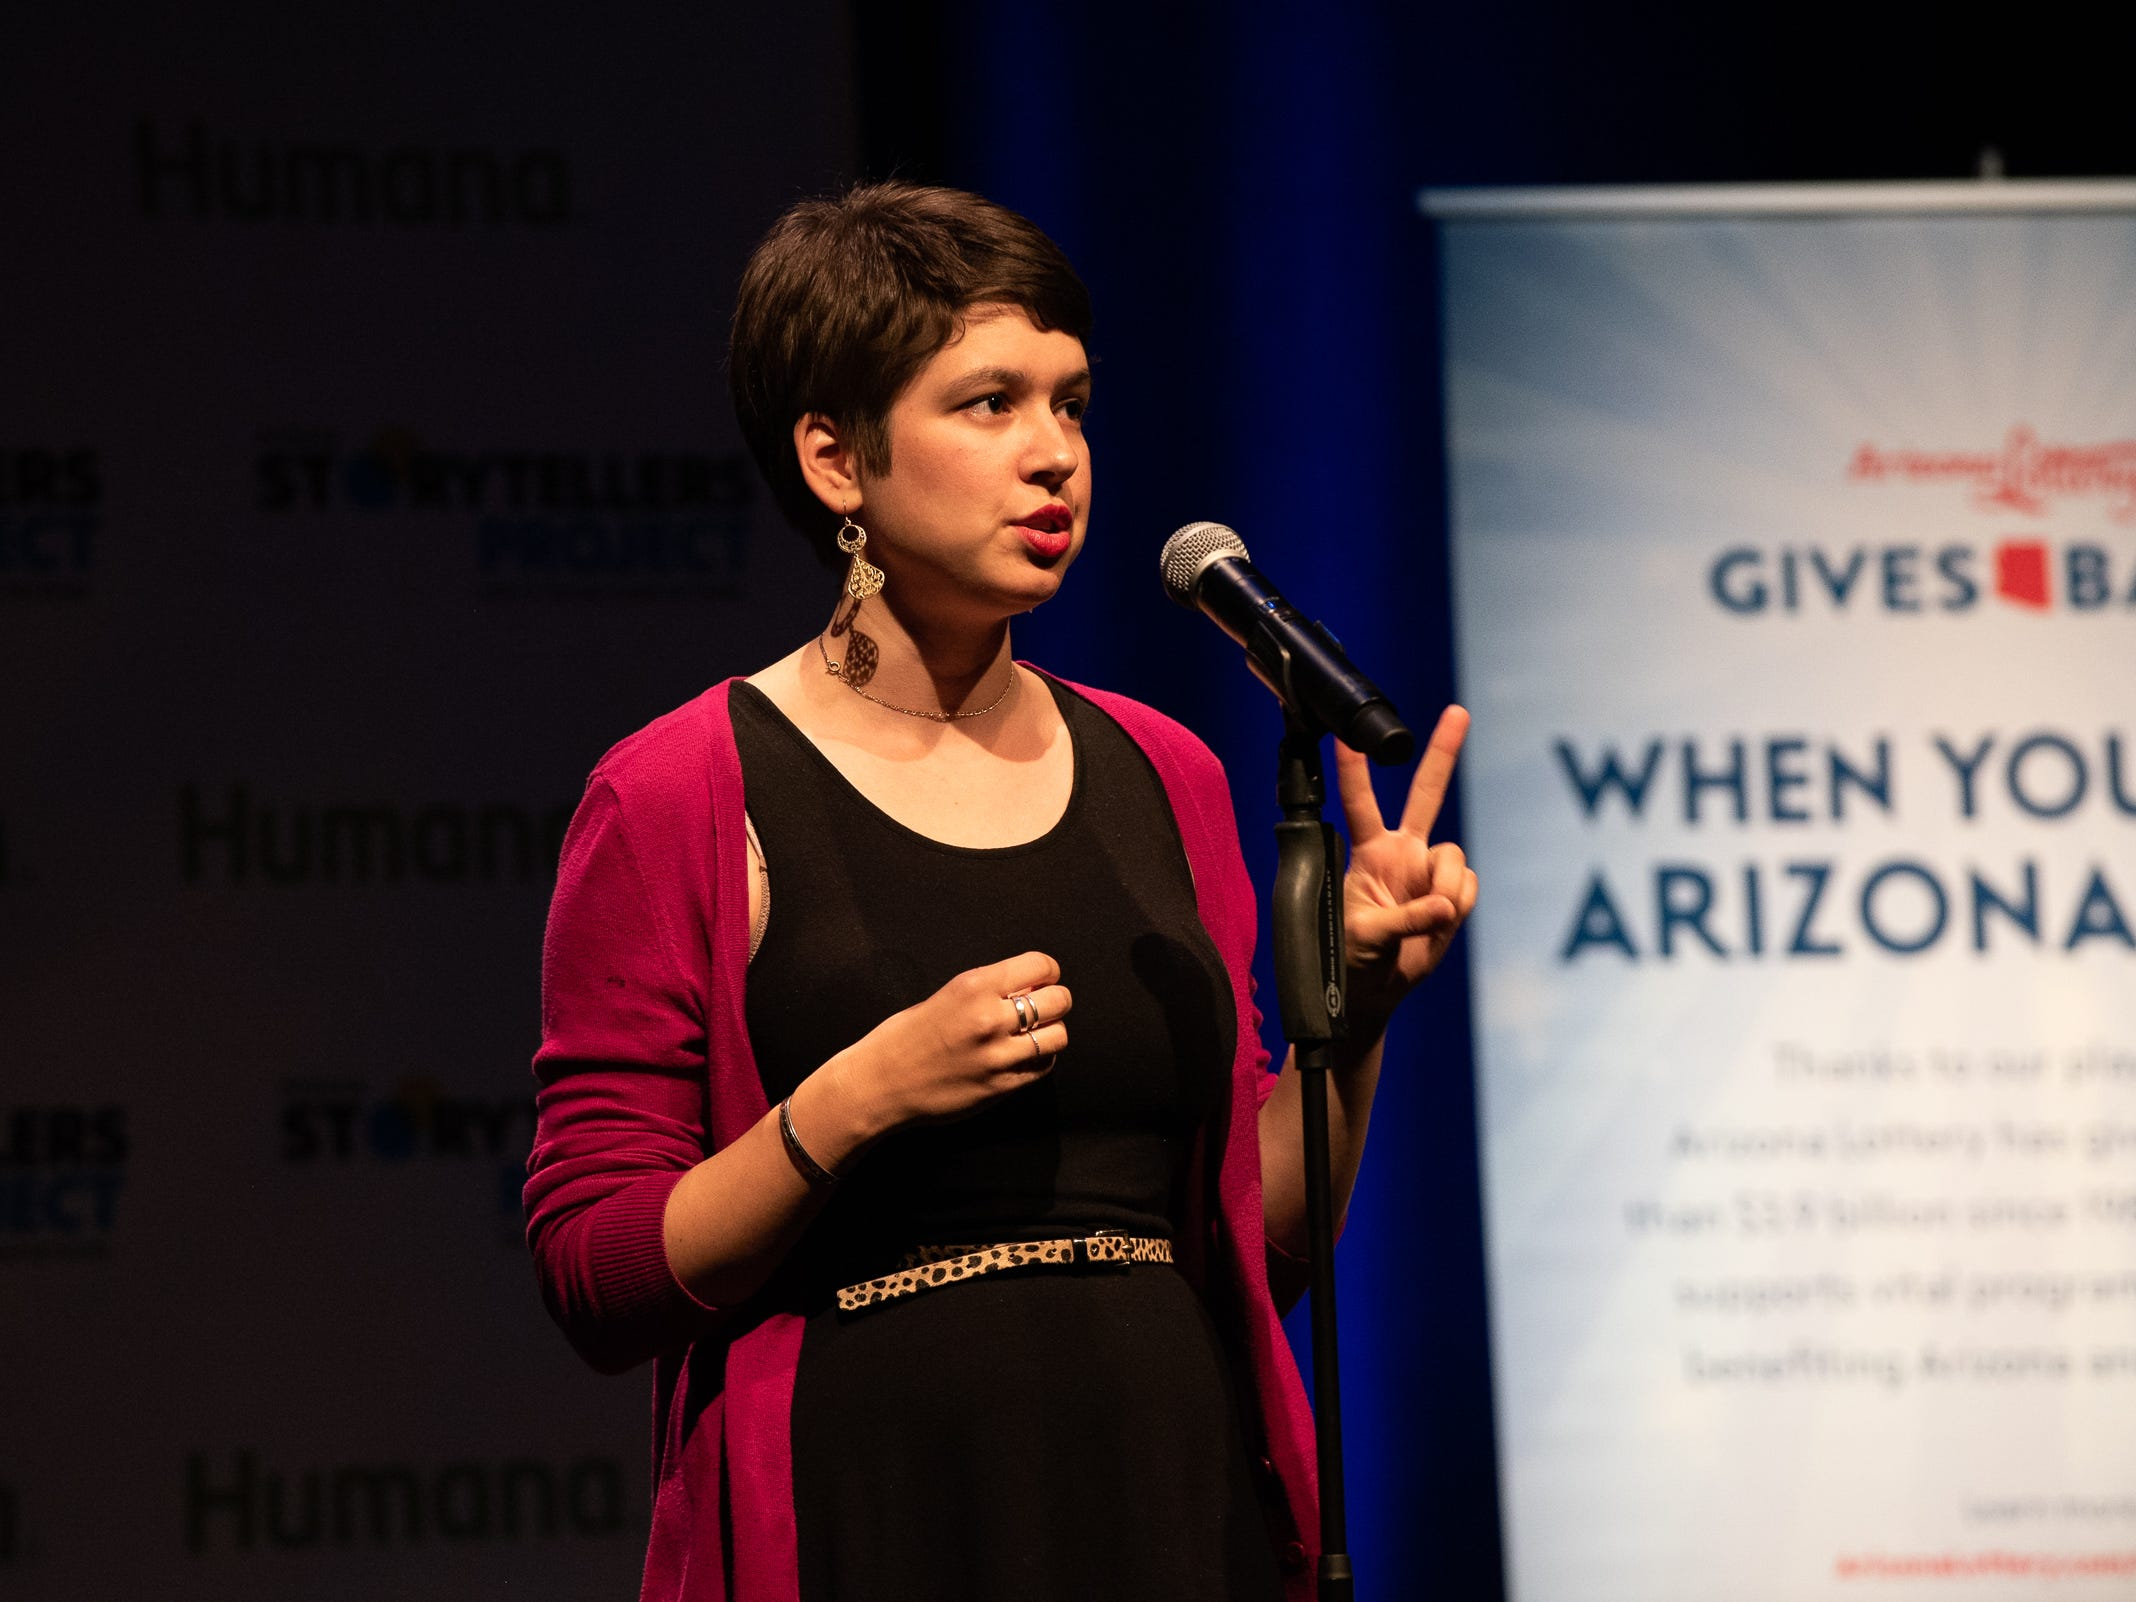 """Eva Jannotta tells her tale during """"Arizona Storytellers: Romance or Not"""" at the Scottsdale Center for Performing Arts on Wednesday, Feb. 13, 2019."""